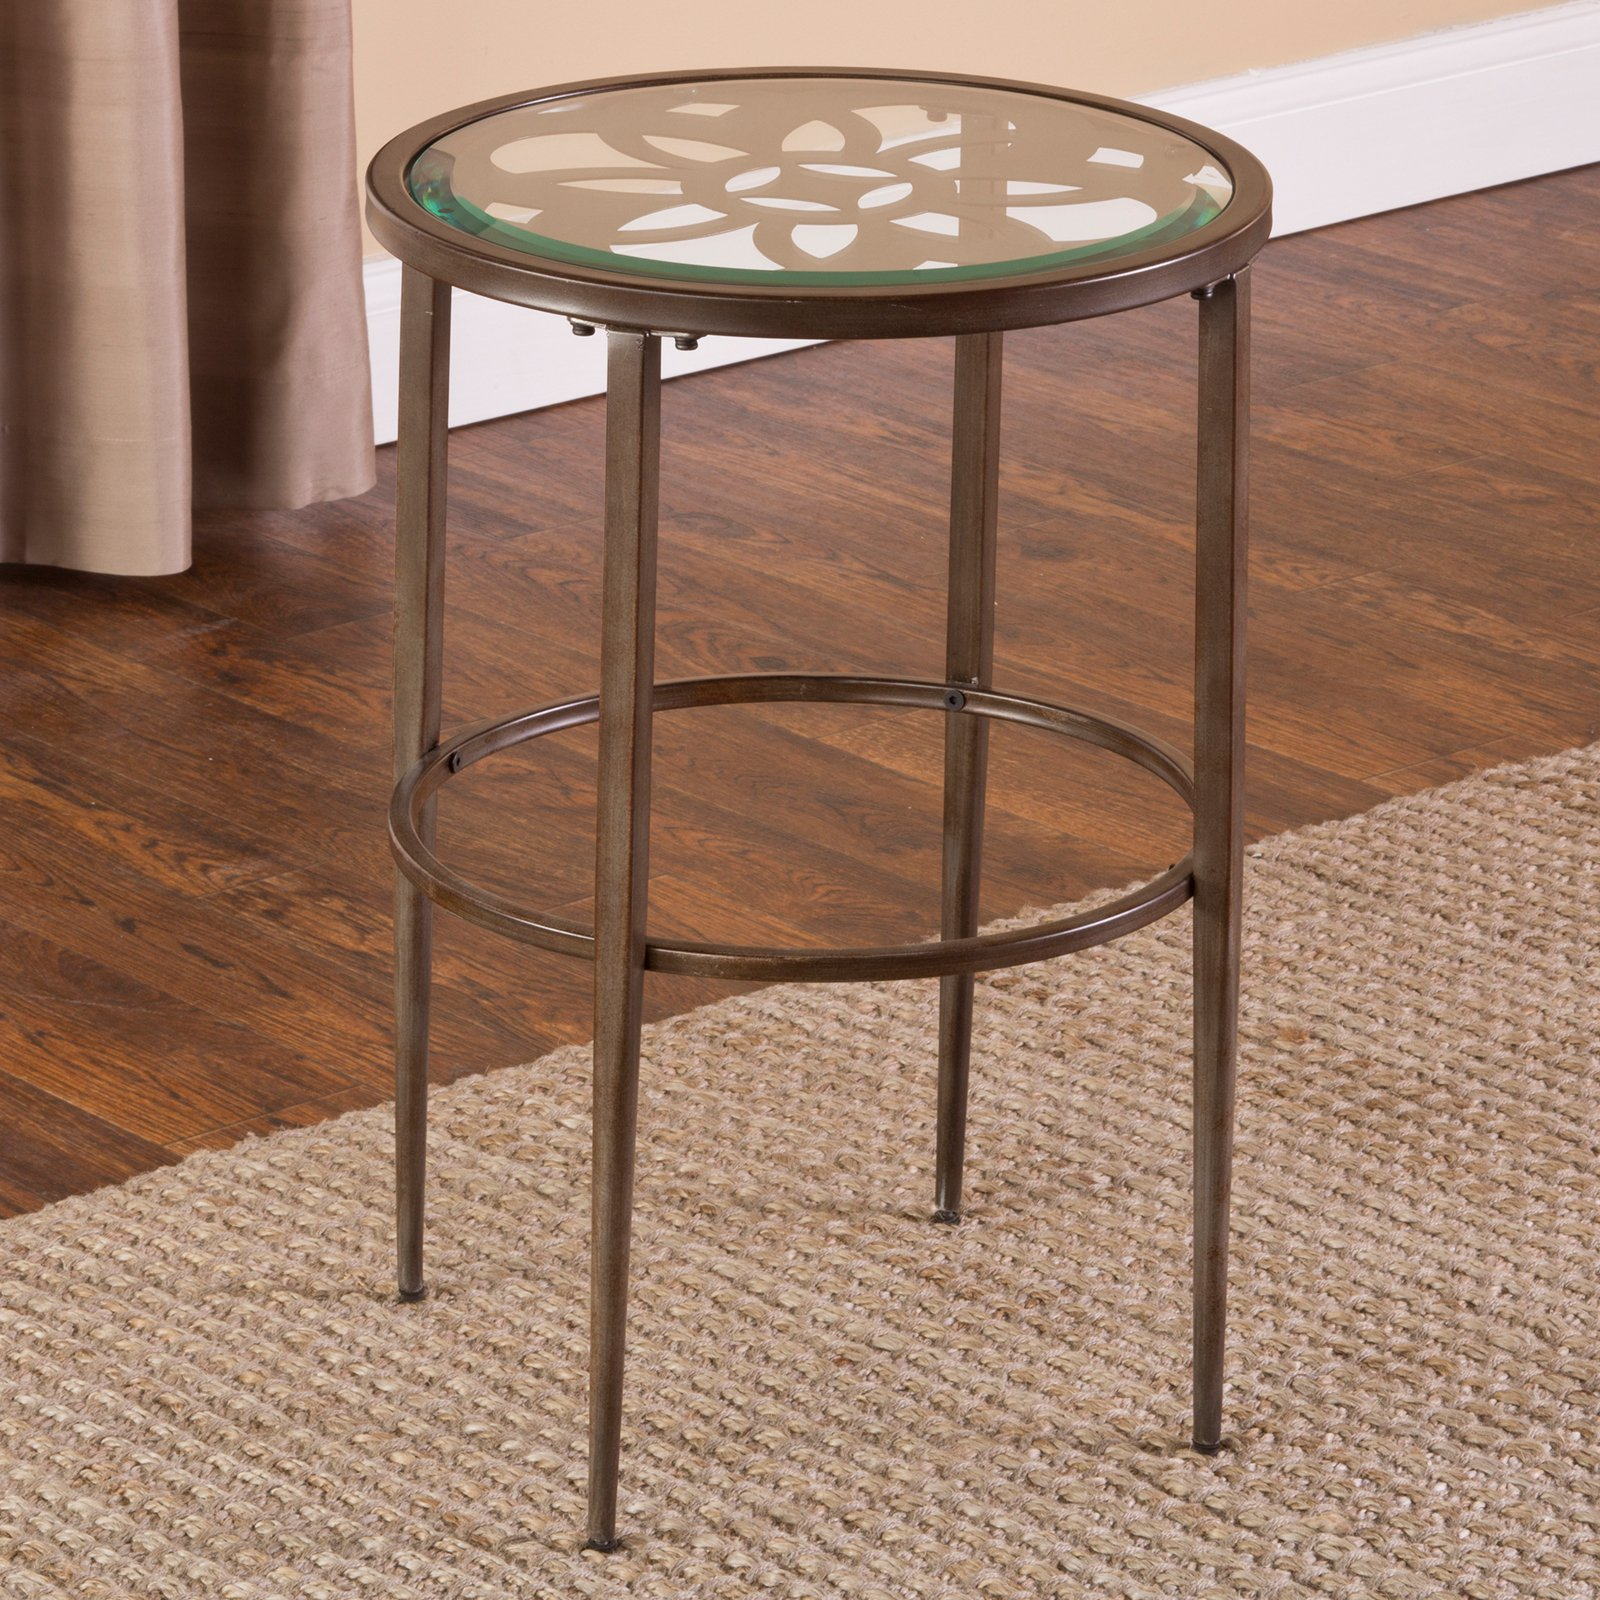 Hillsdale Furniture Marsala Metal and Glass End Table, Brown